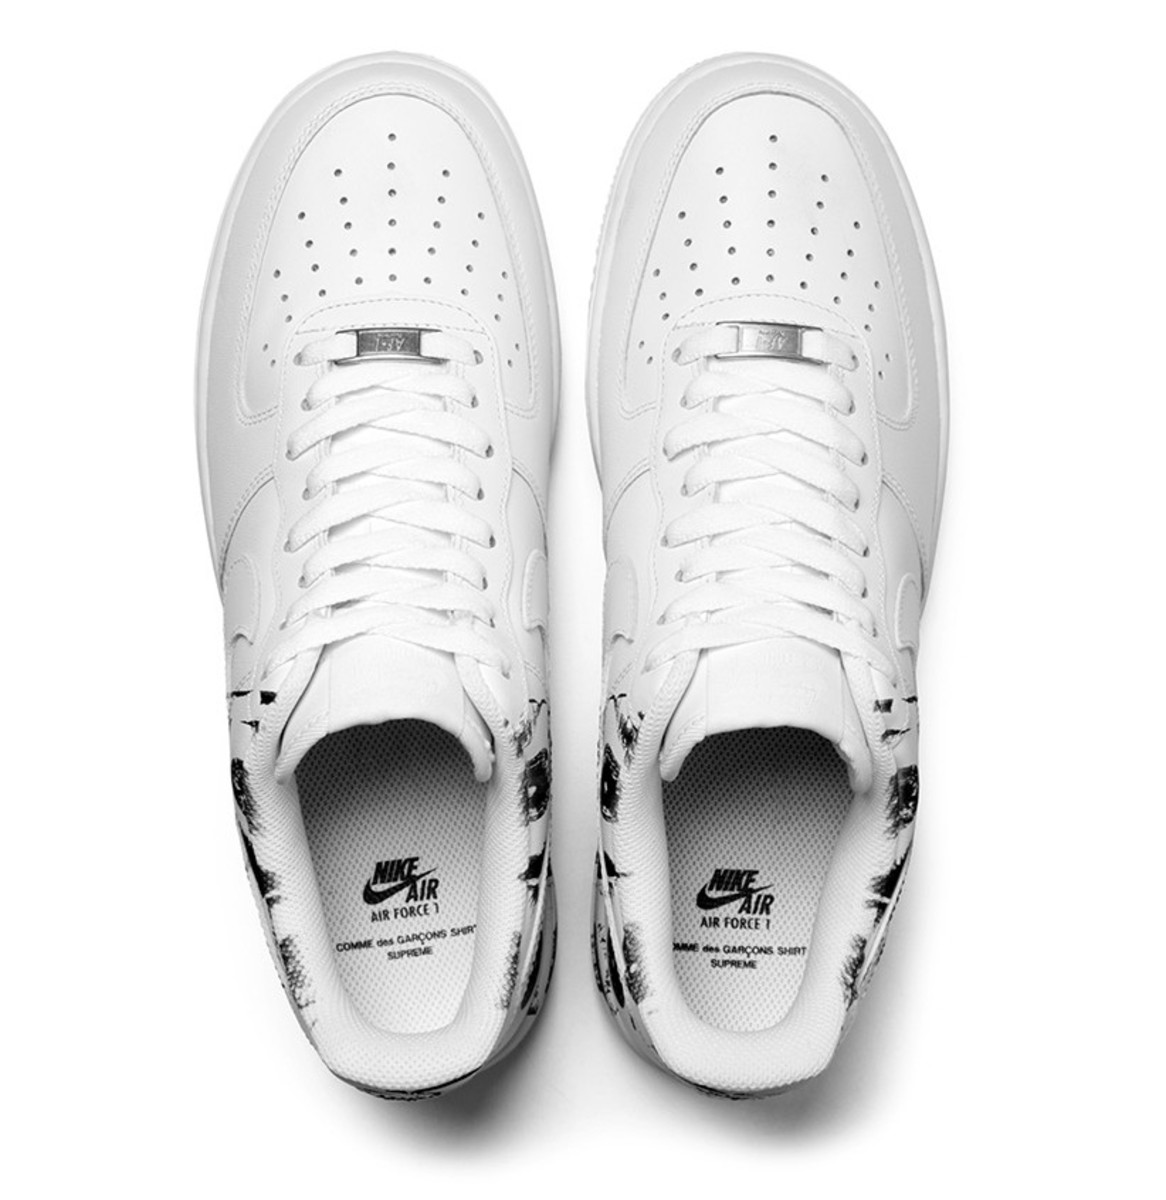 supreme-cdg-nike-air-force-1-c